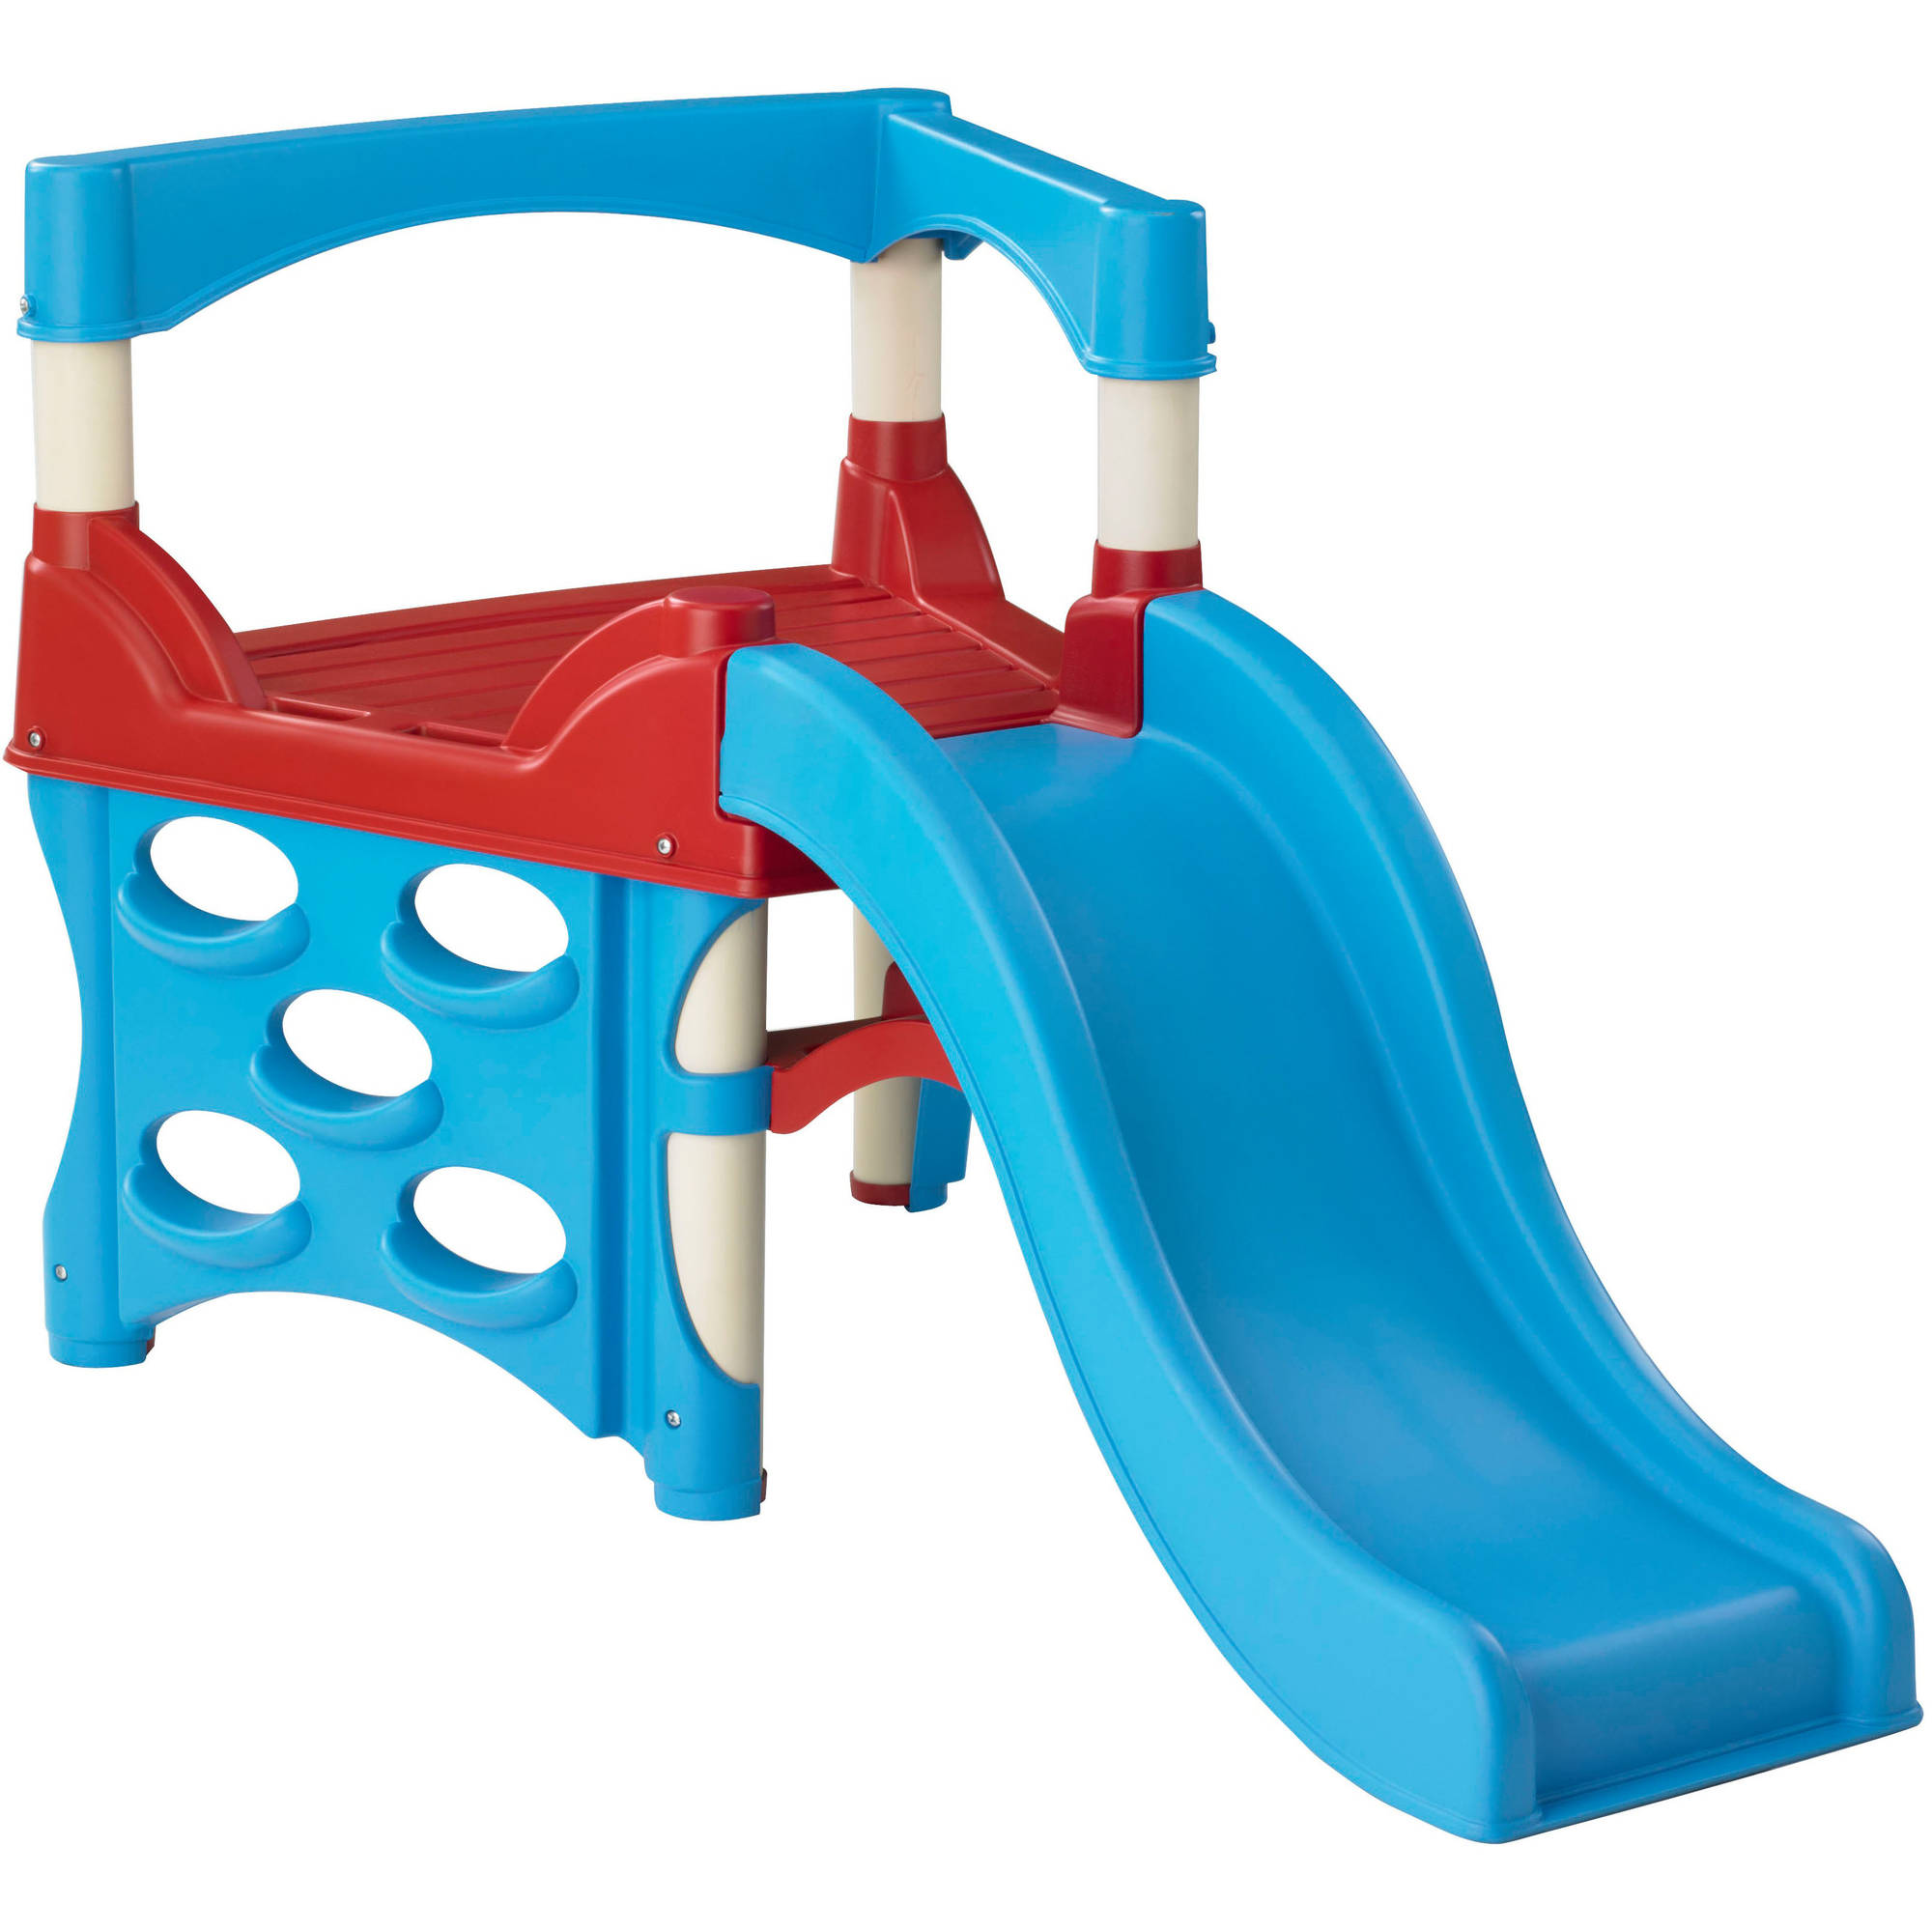 Lil Monkey Playground Jungle Gym Monkey Bar Climbing Frame Play